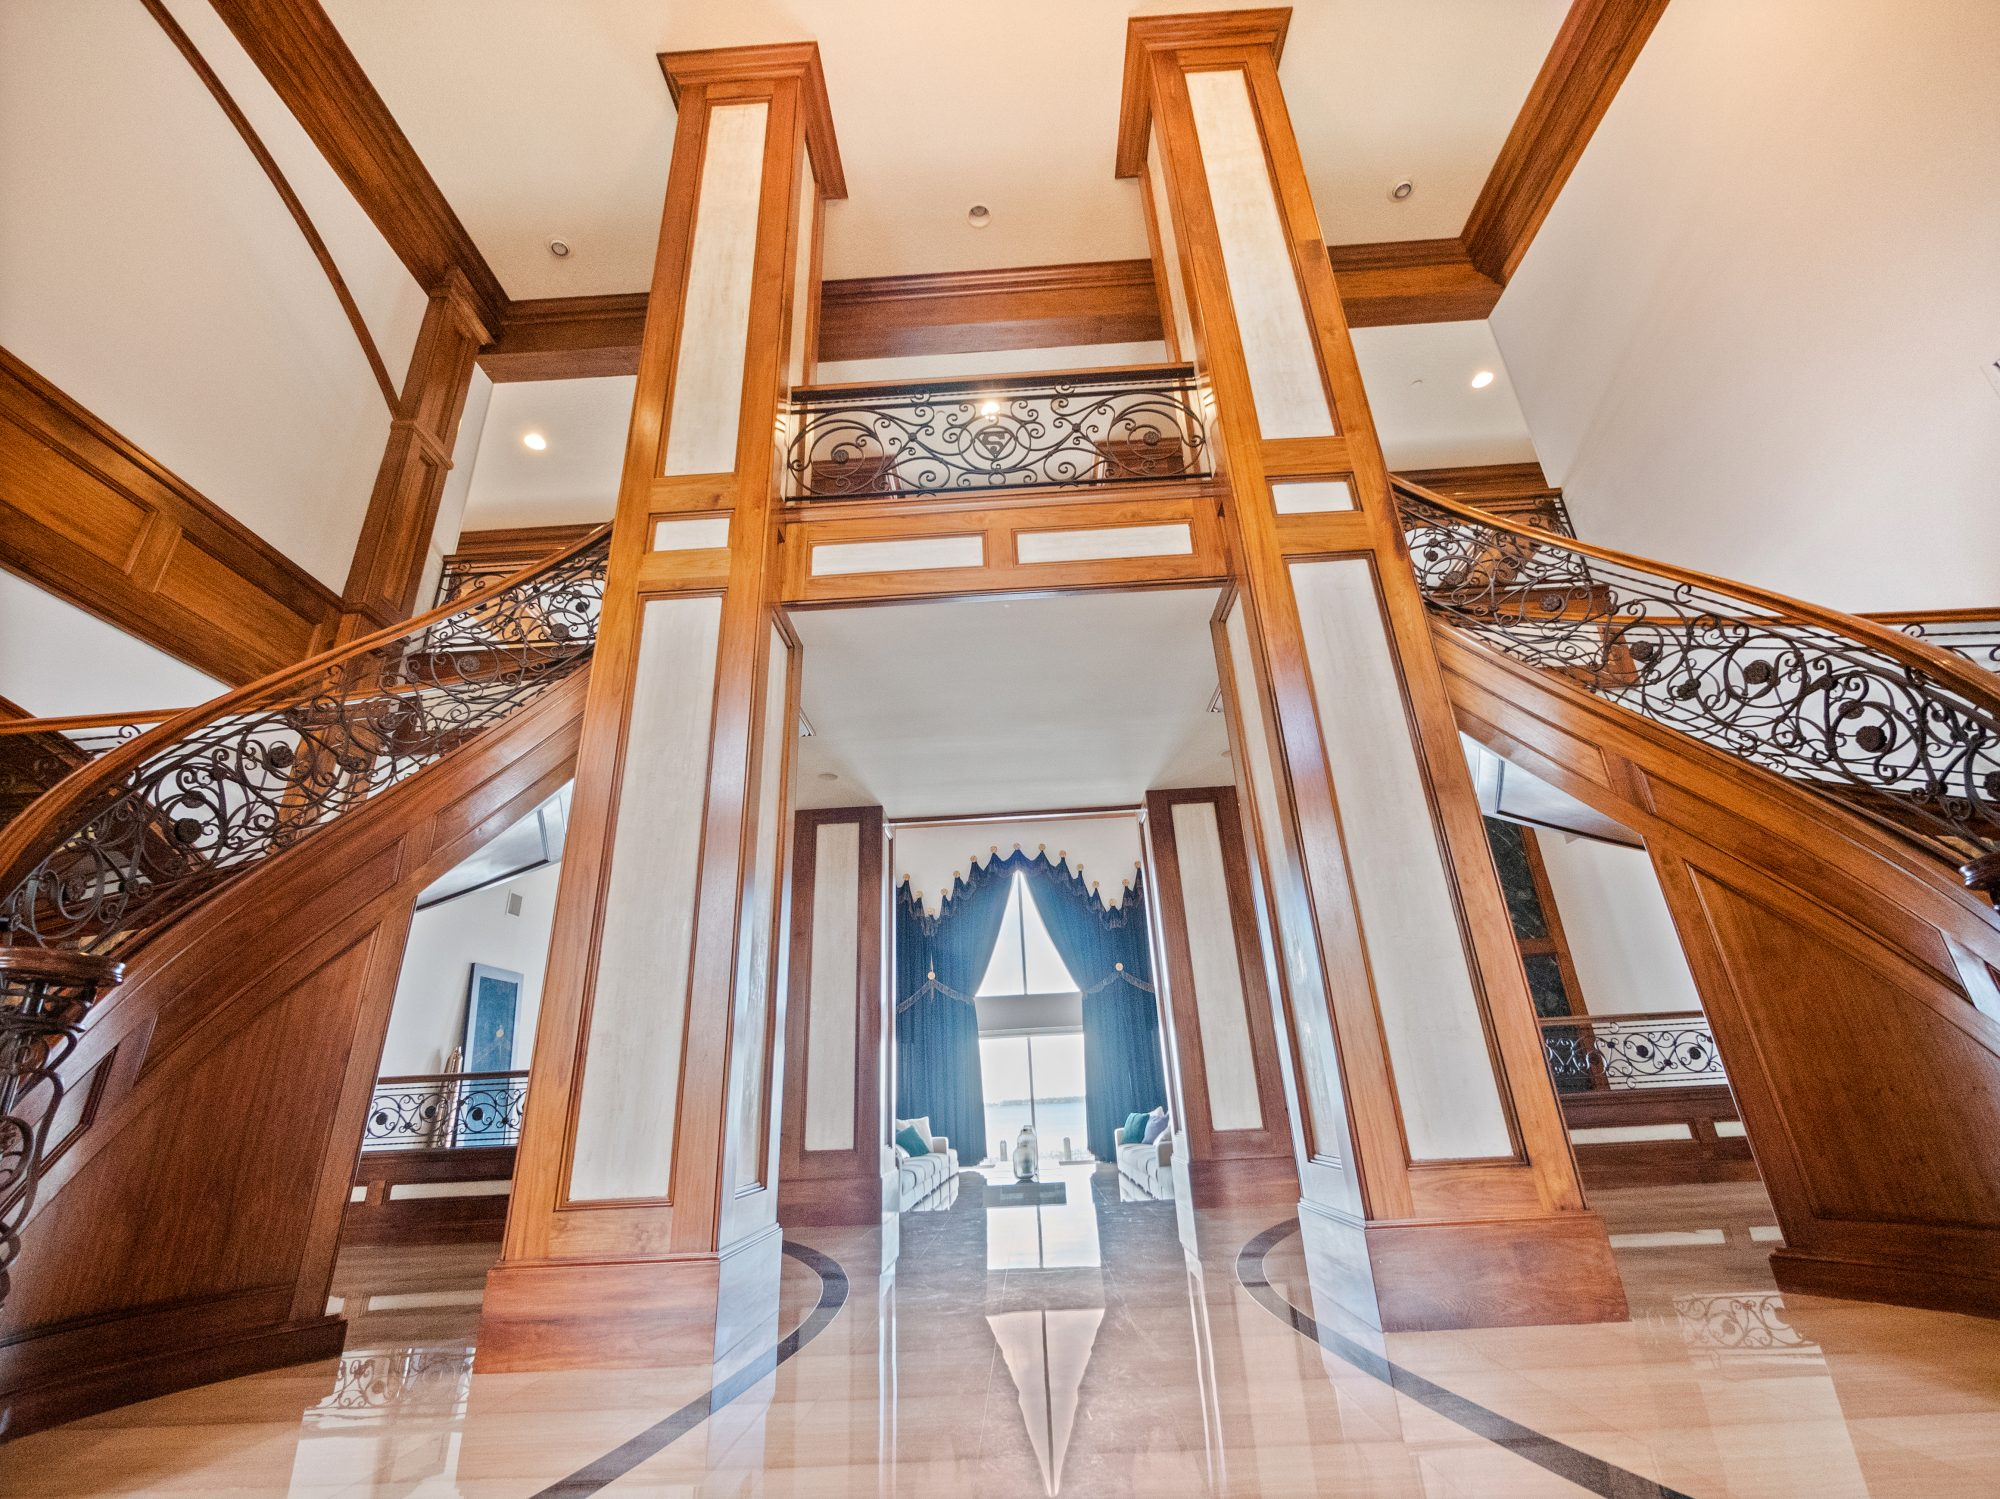 SHAQUILLE O'NEAL FLORIDA MANSION 5